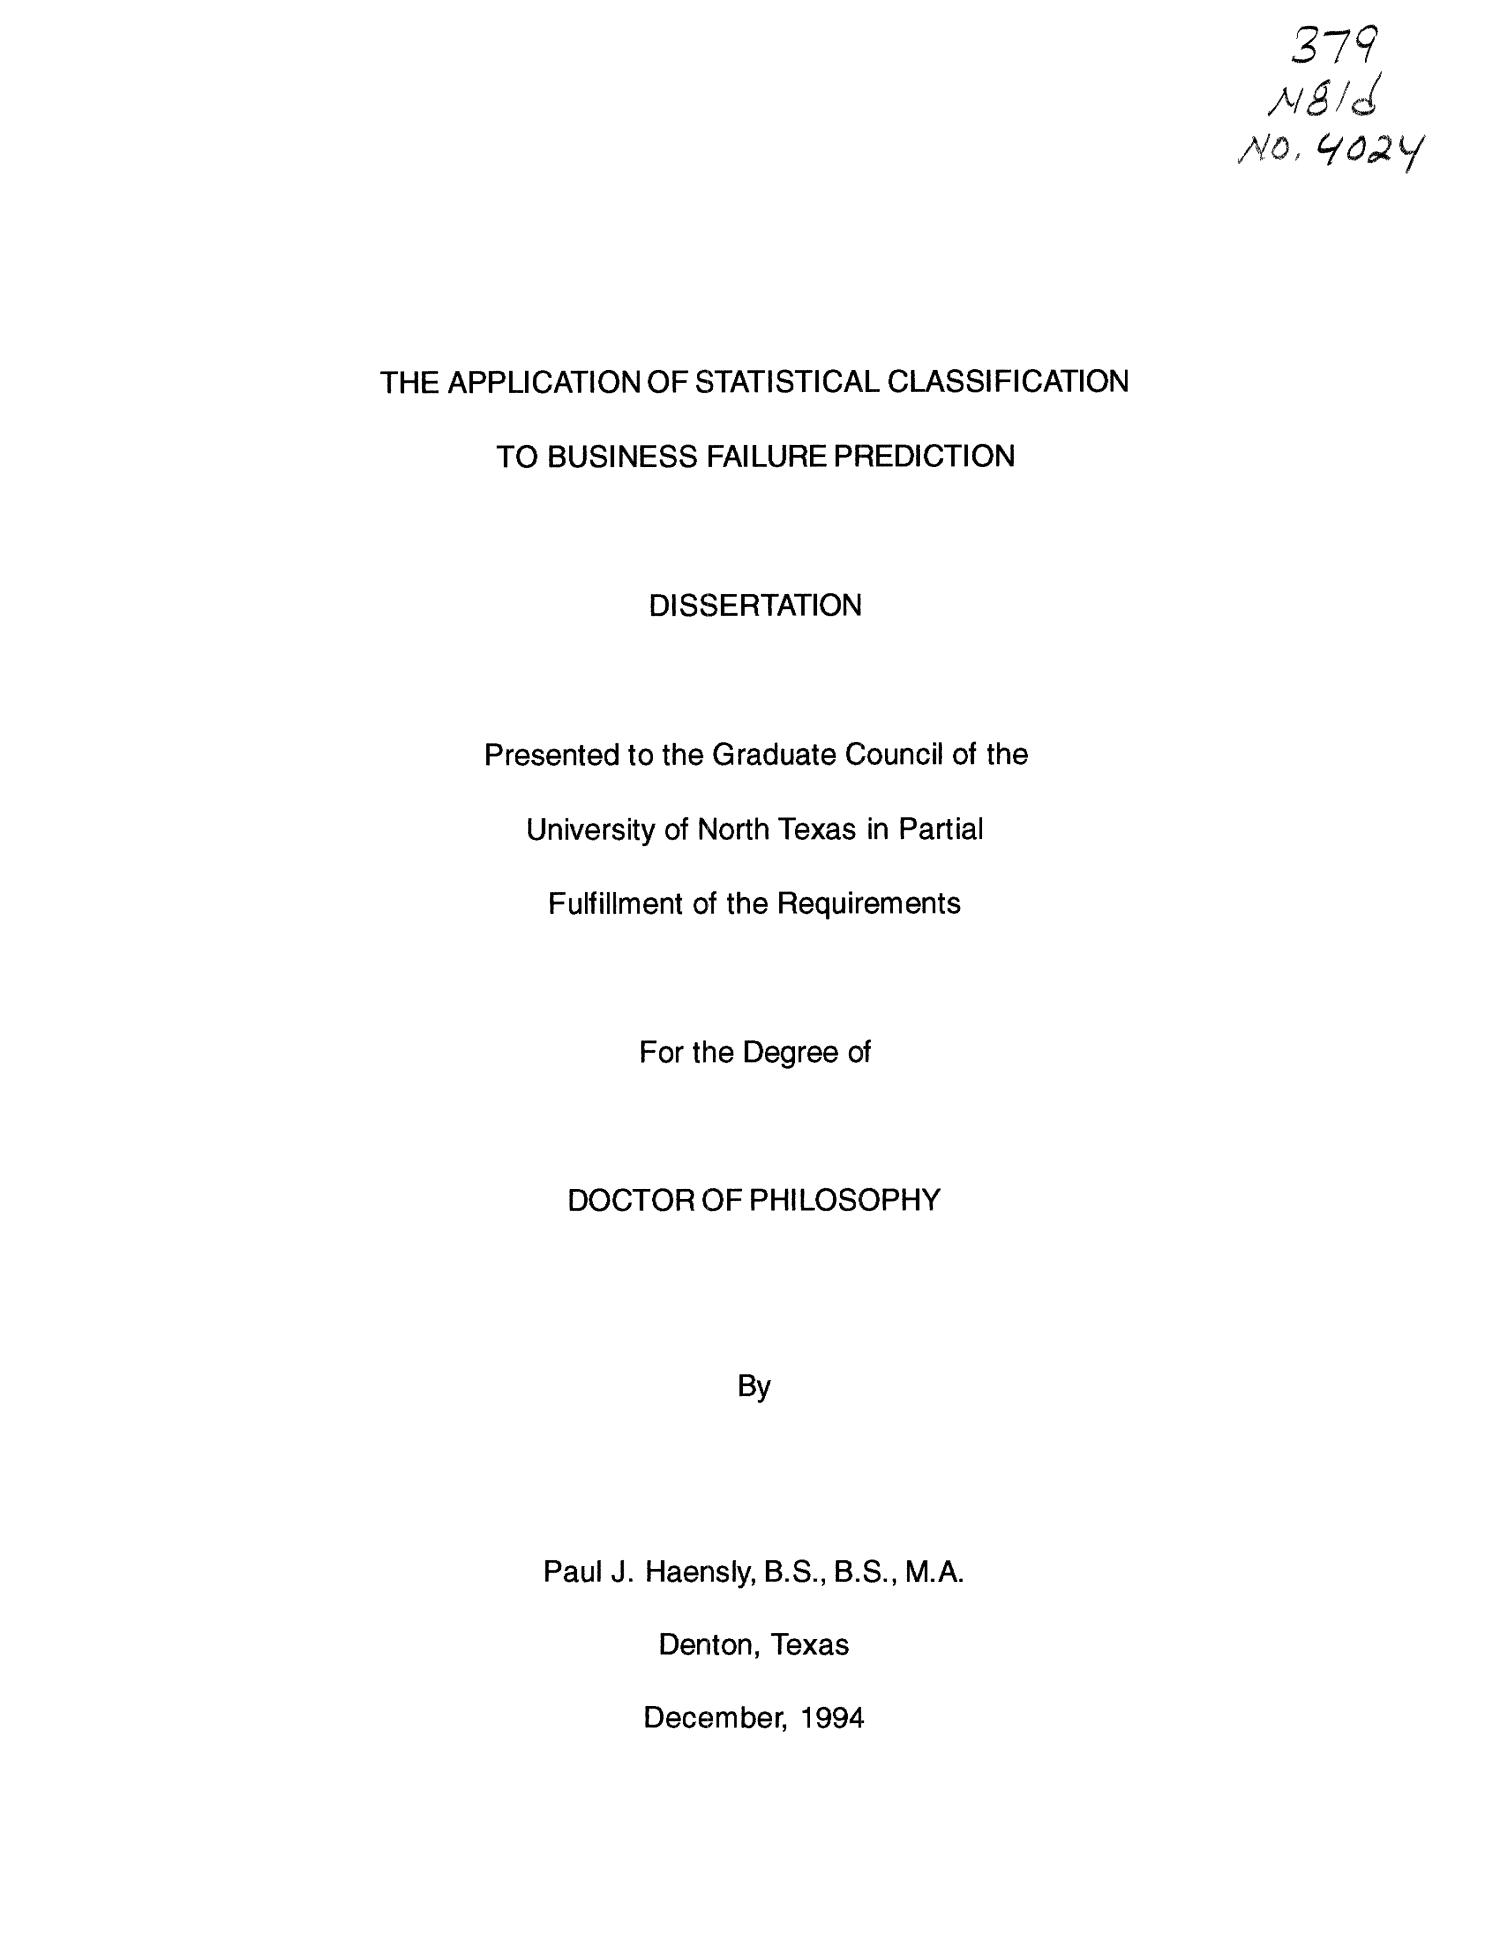 The Application of Statistical Classification to Business Failure Prediction                                                                                                      Title Page